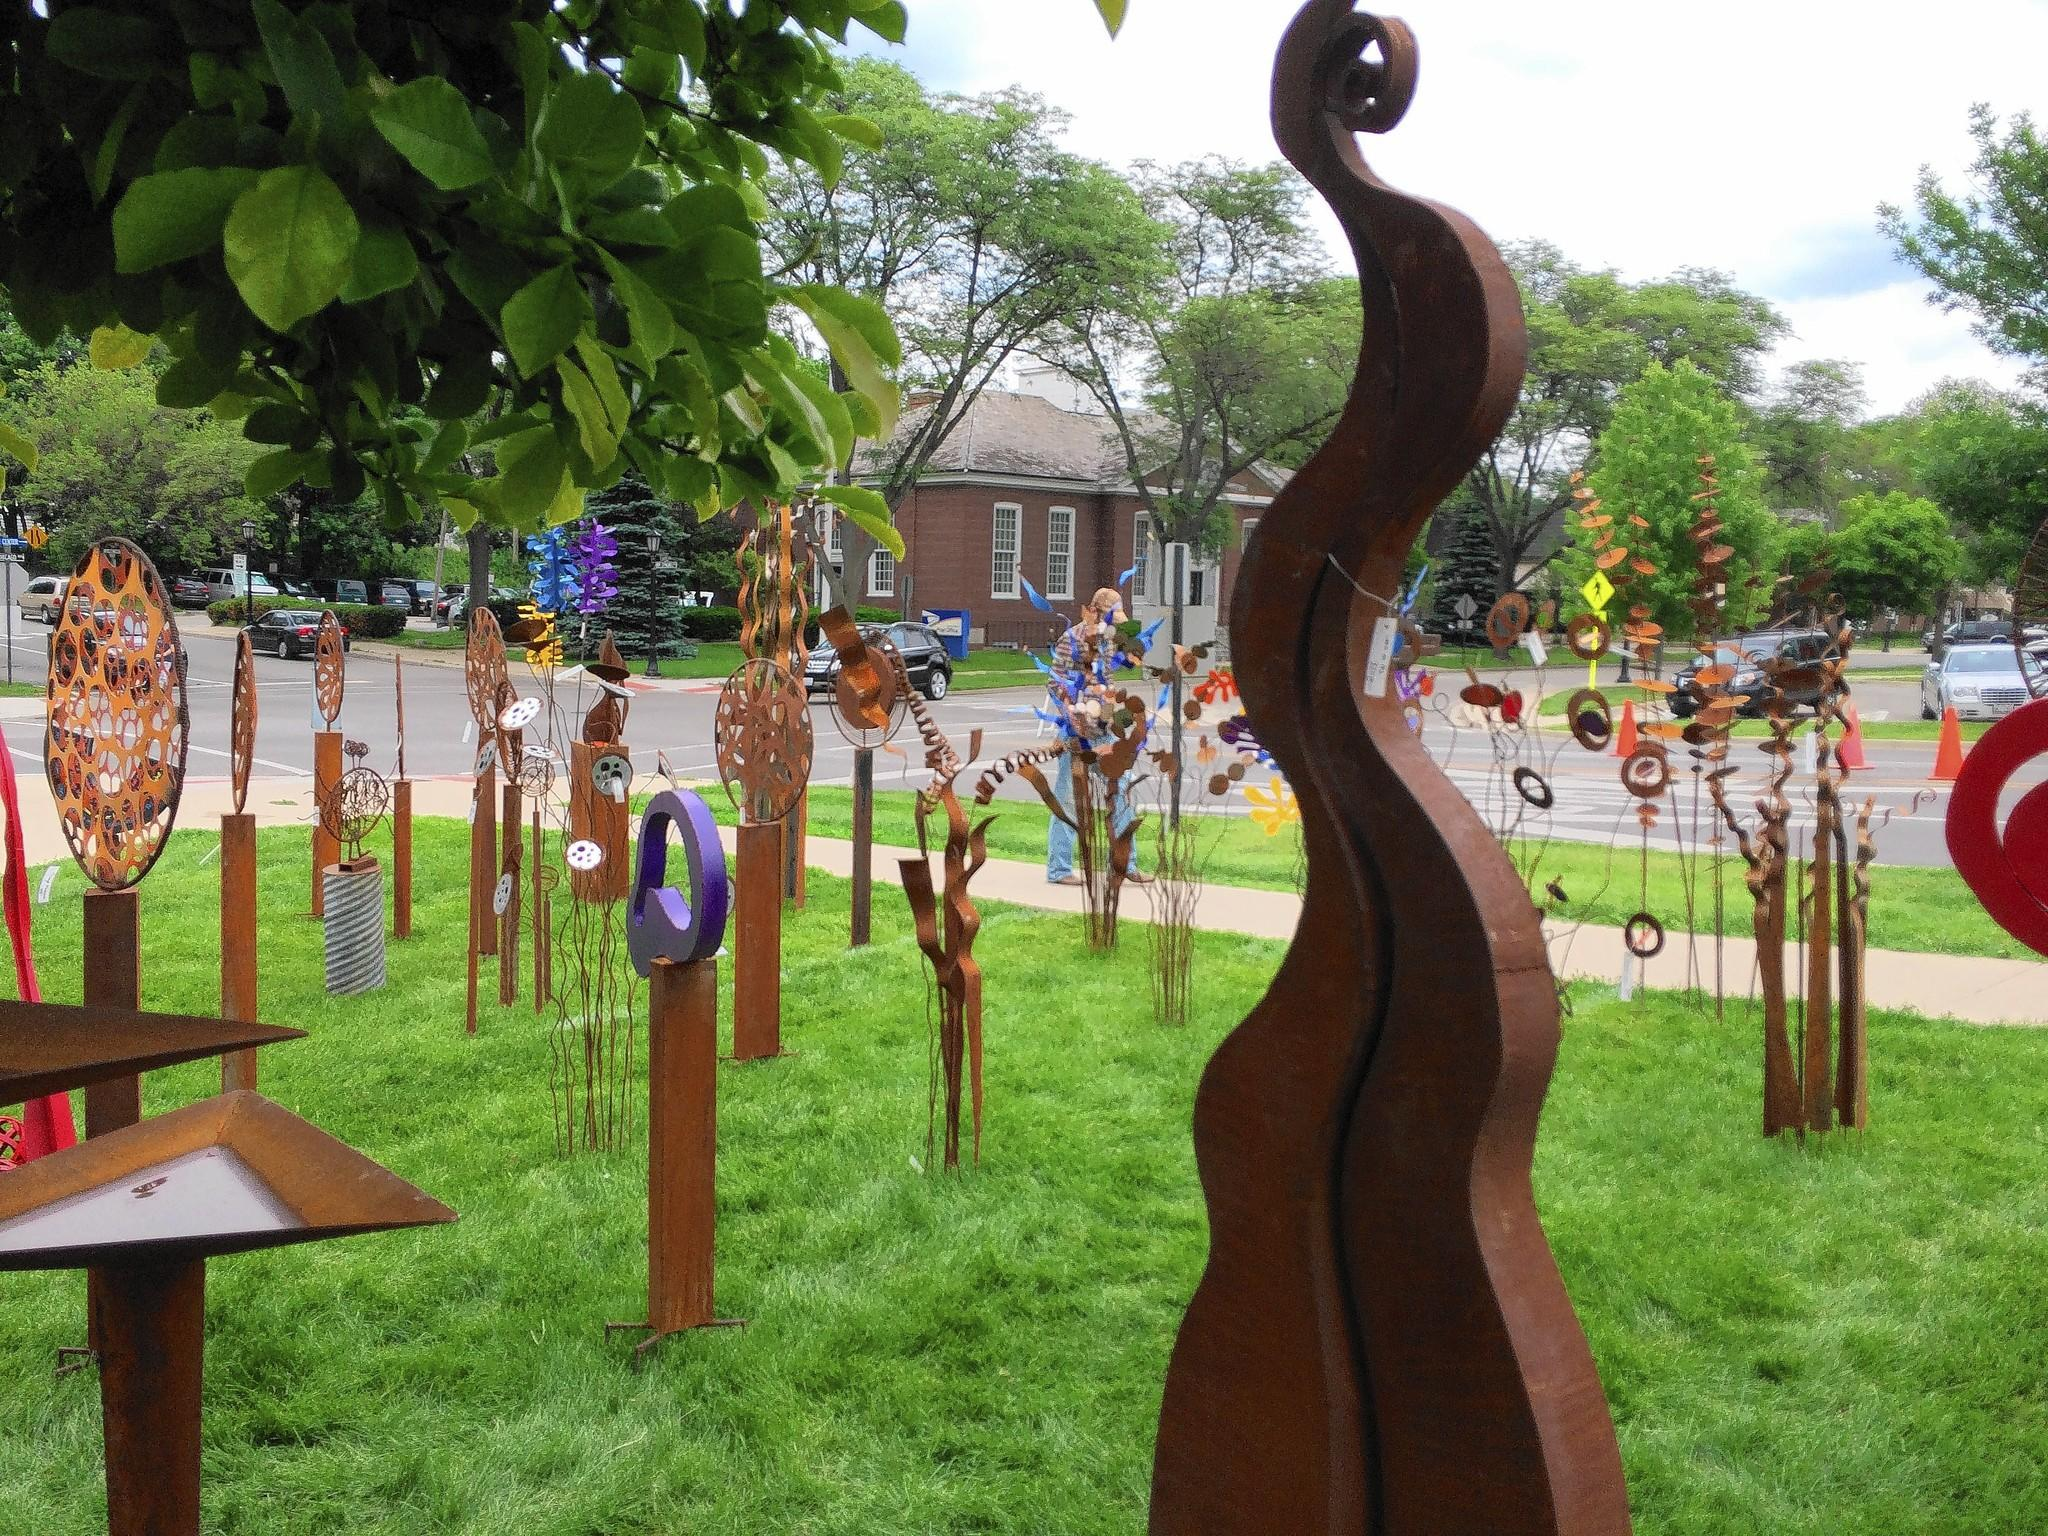 Lawn sculptures were among the items for sale at the 15th annual Hinsdale Art Fair.